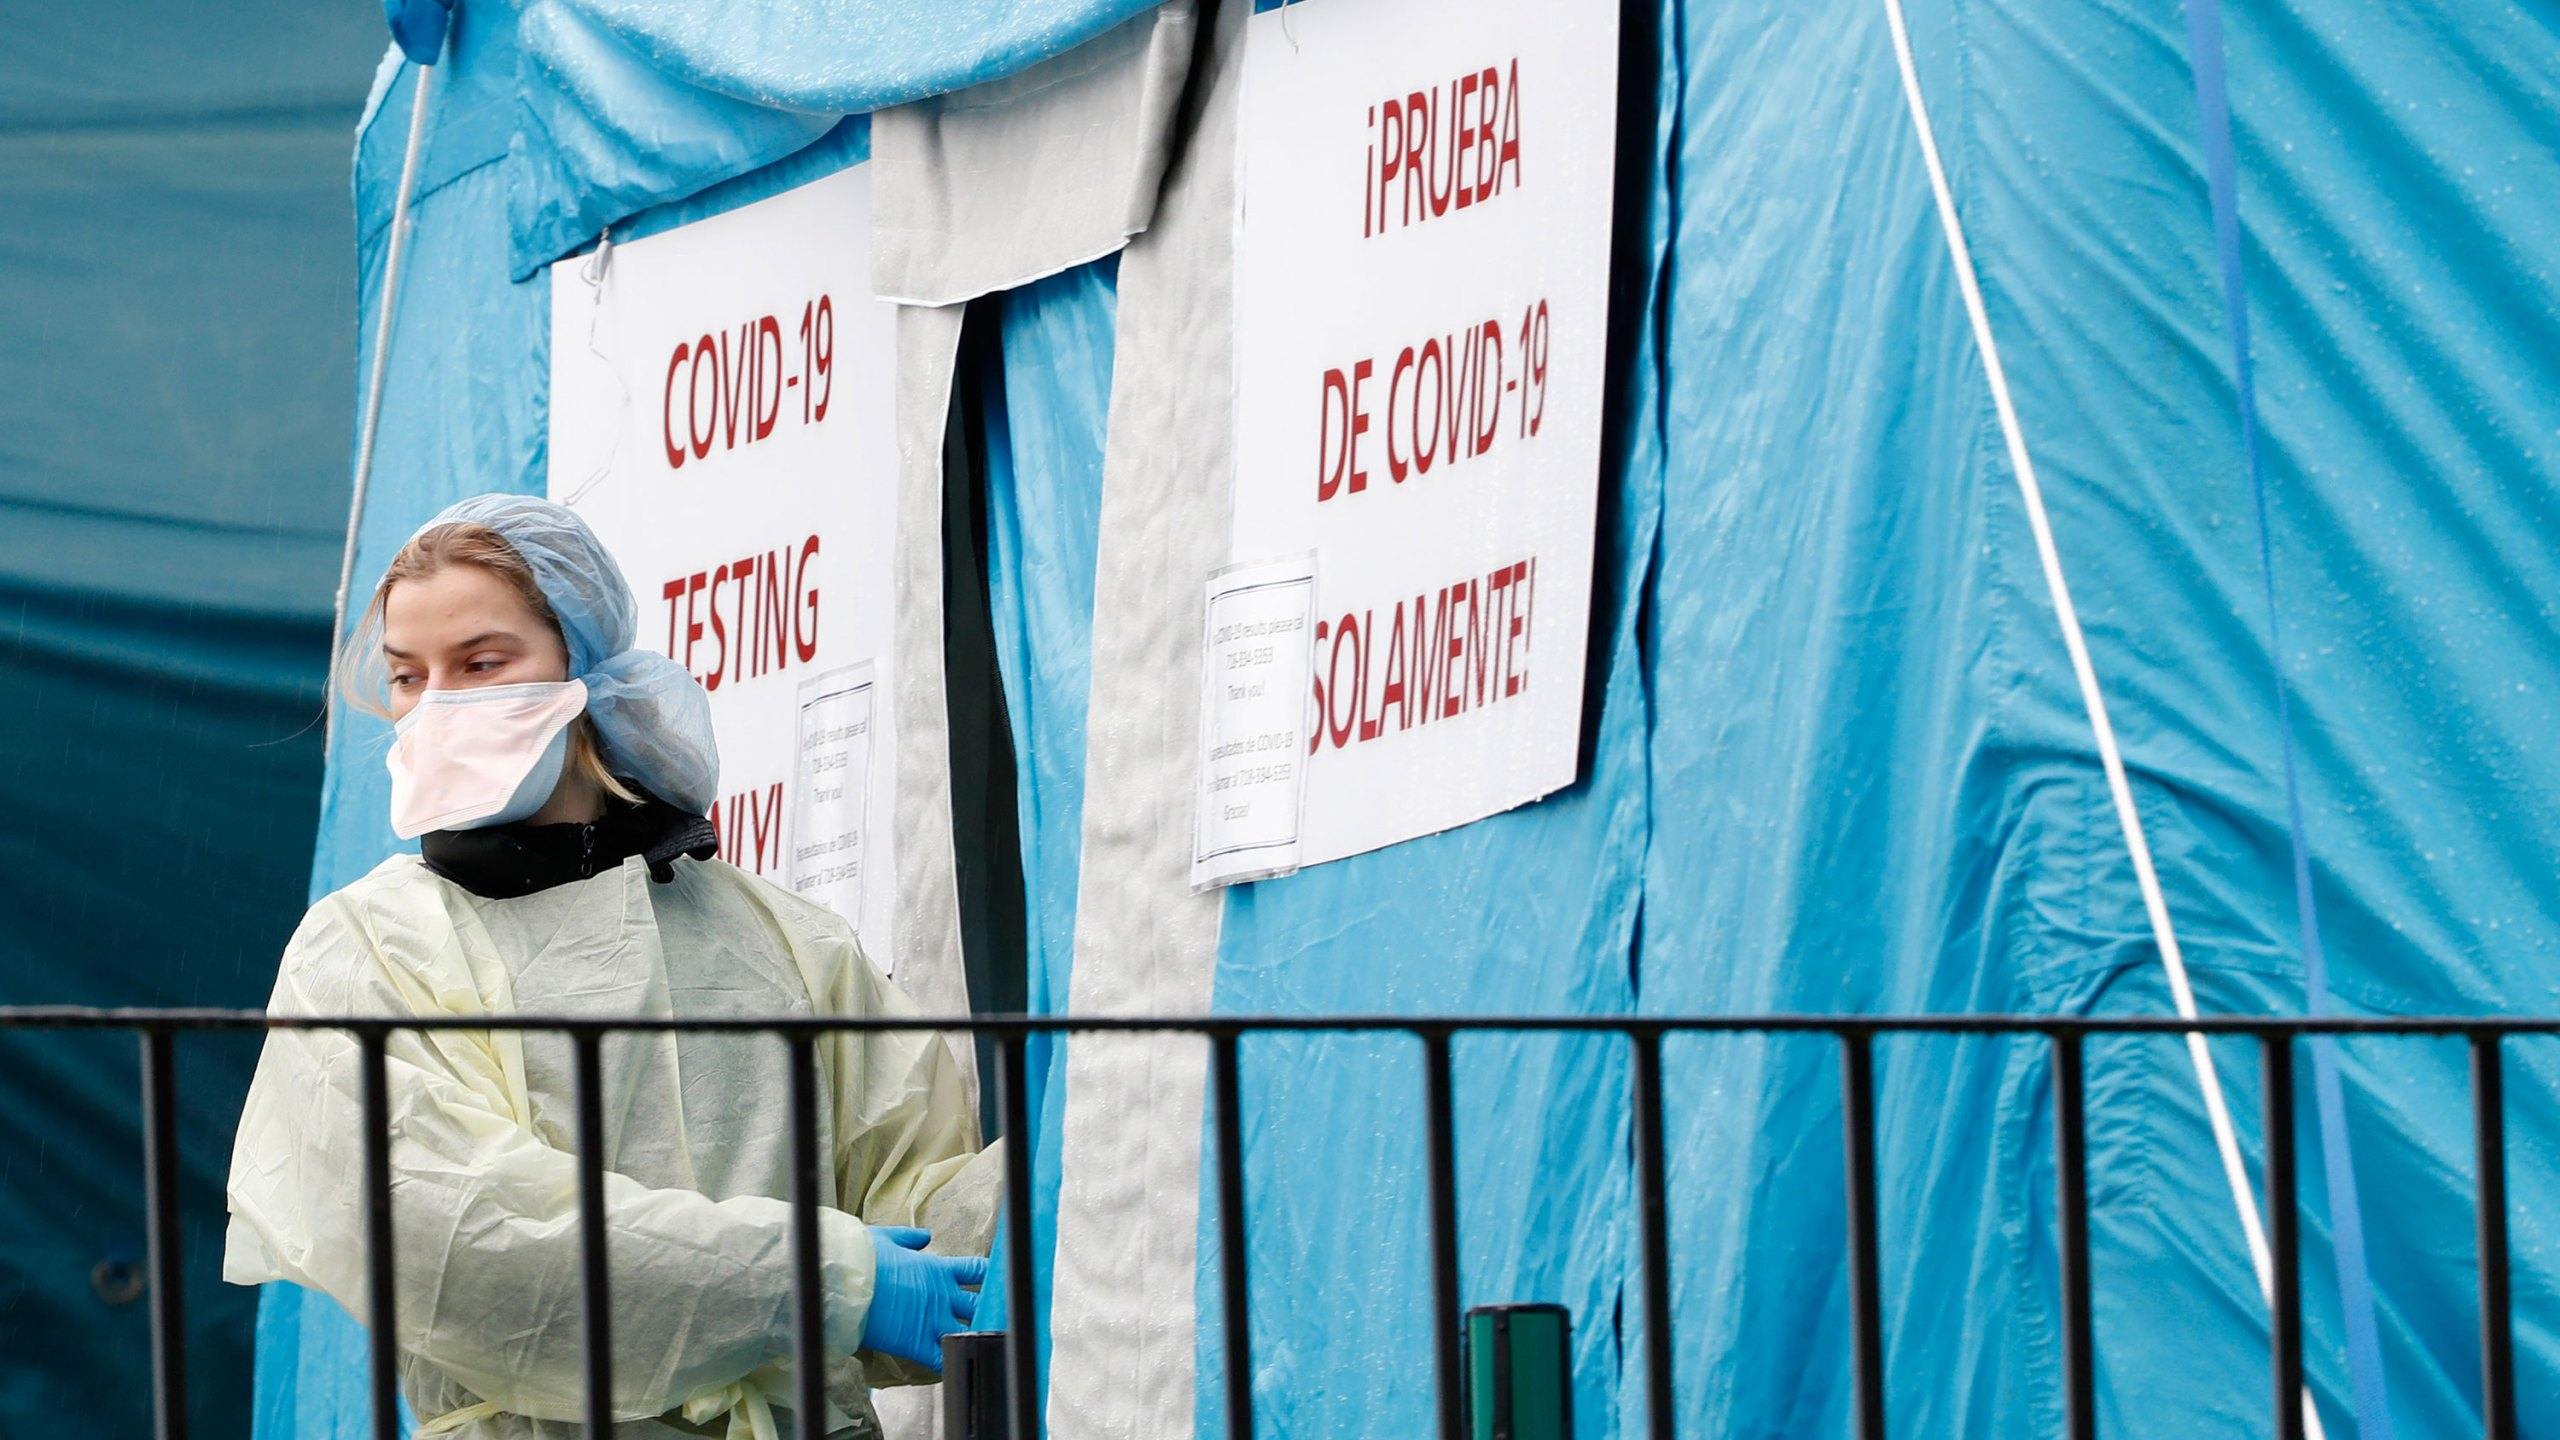 A medical worker prepares to reenter a COVID-19 testing tent set up outside Elmhurst Hospital Center in New York, Saturday, March 28, 2020. (Kathy Willens/AP)